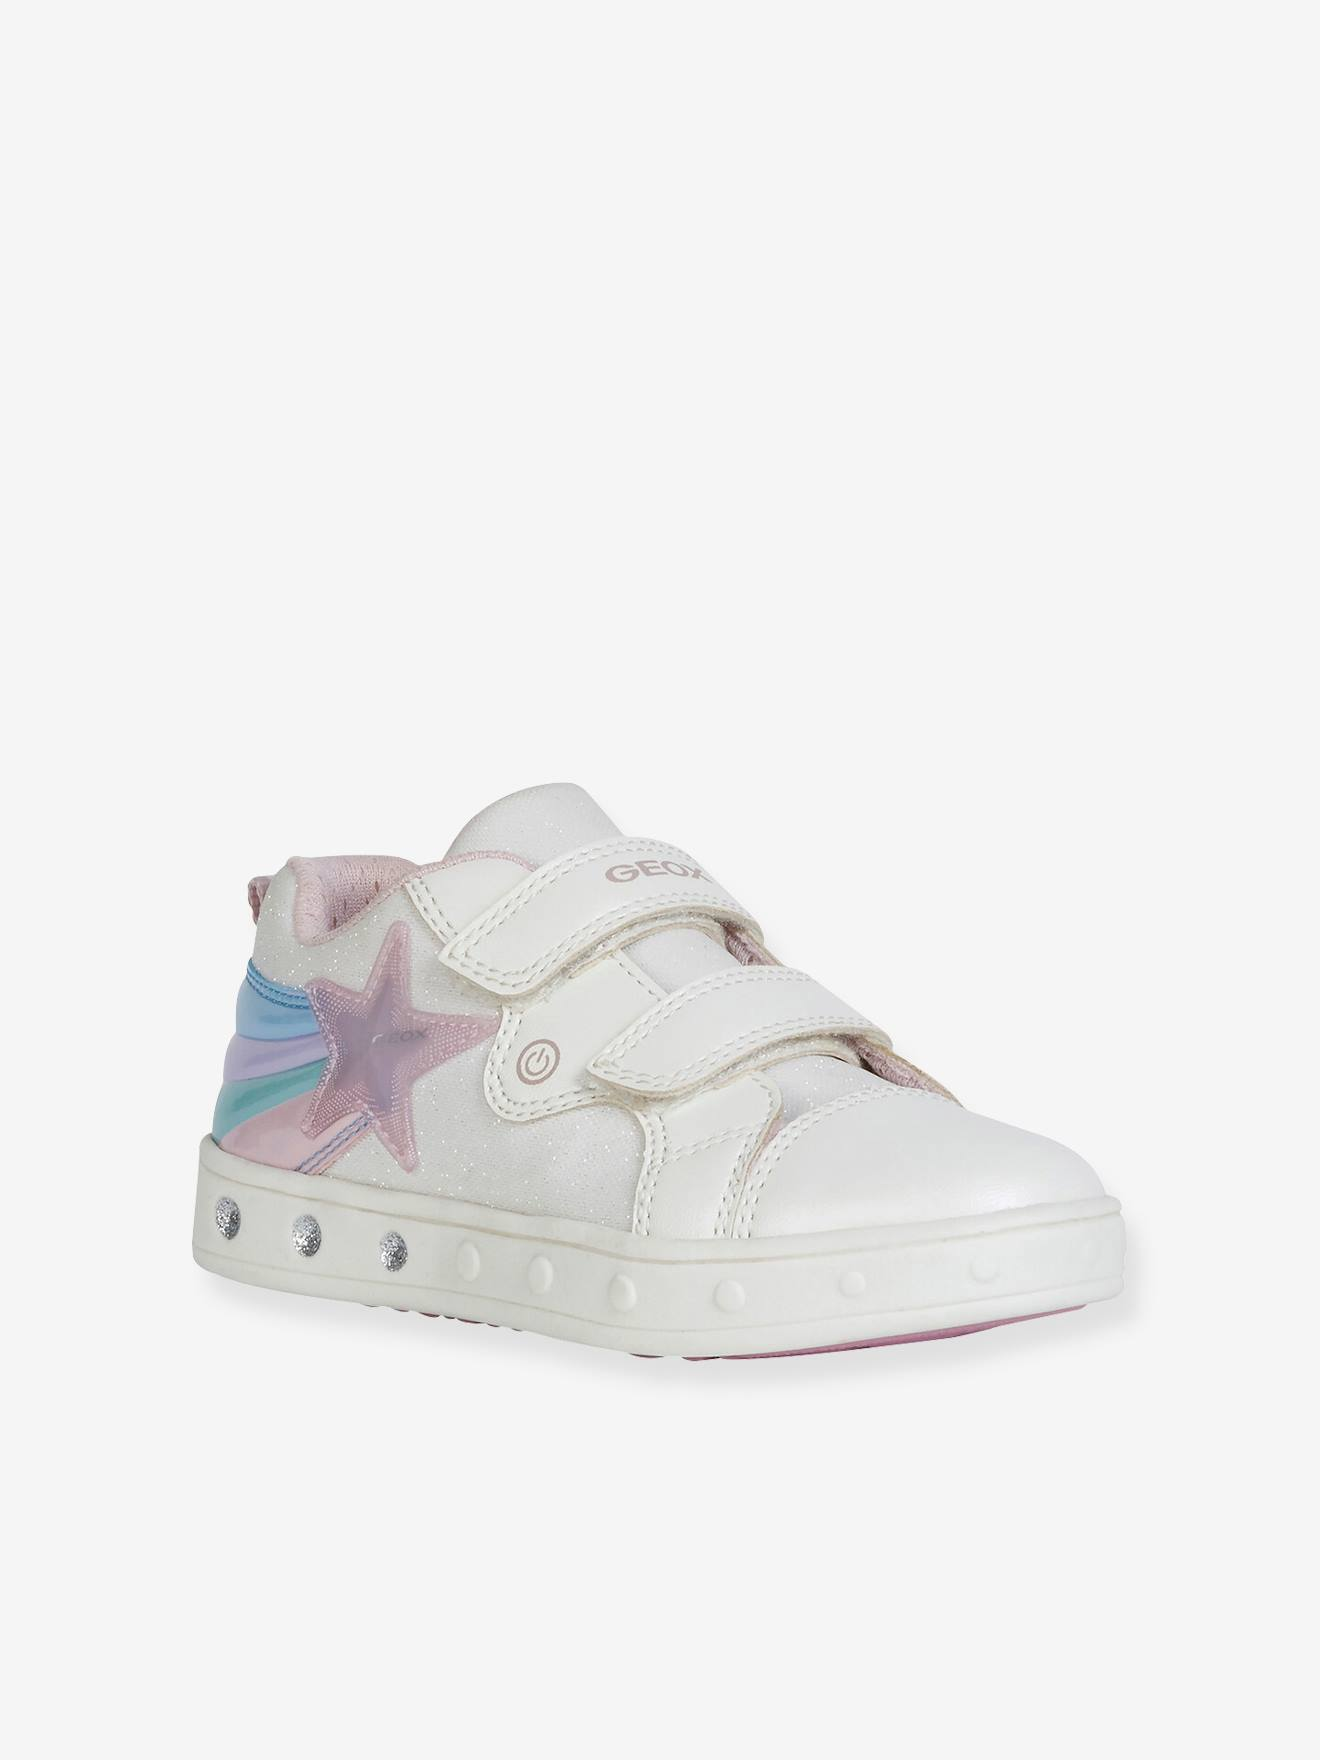 Trainers for Girls, Skylin by GEOX